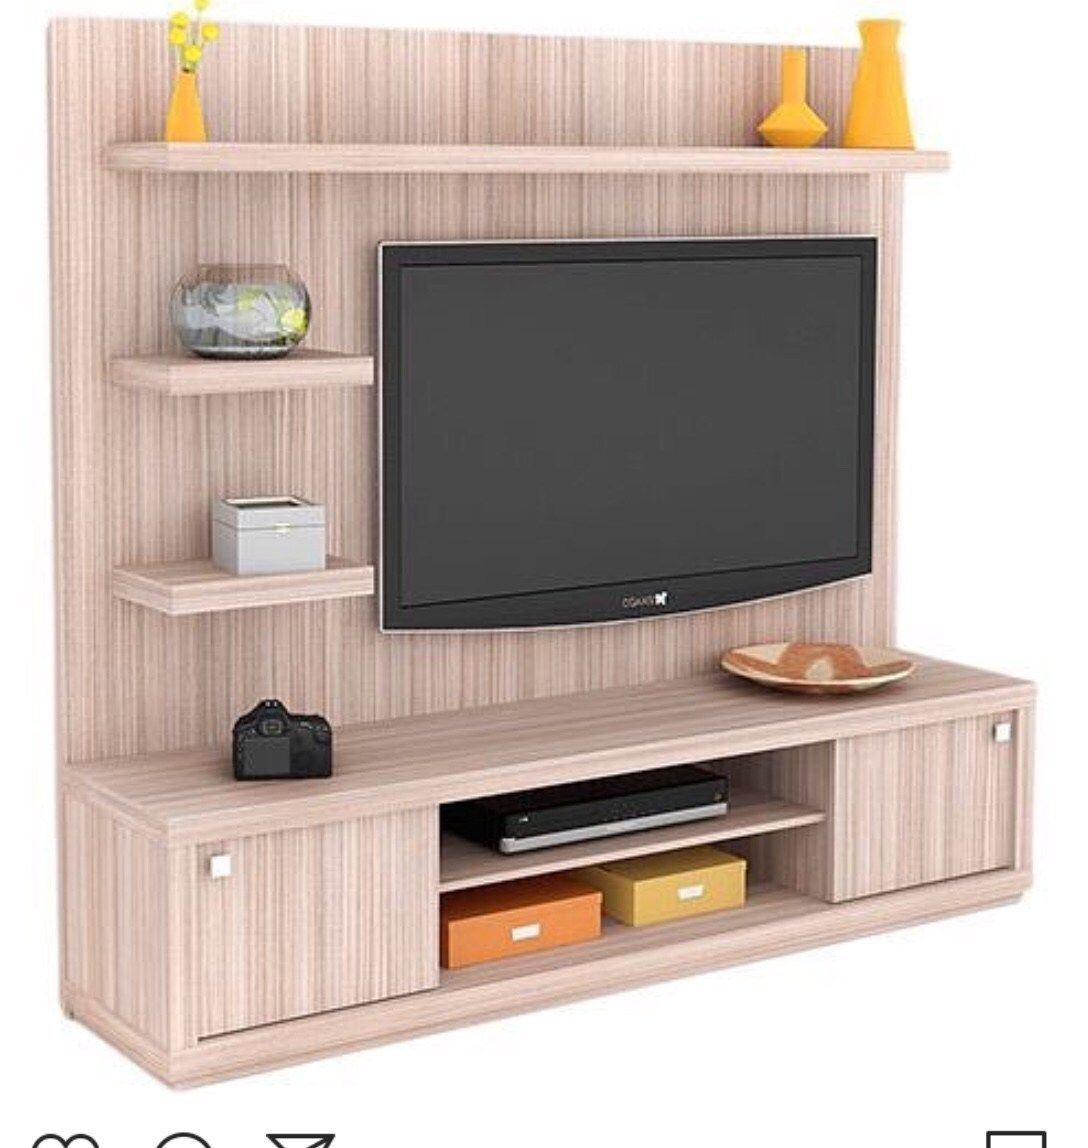 30 Amazing Tv Unit Design Ideas For Your Living Room Tv Unit